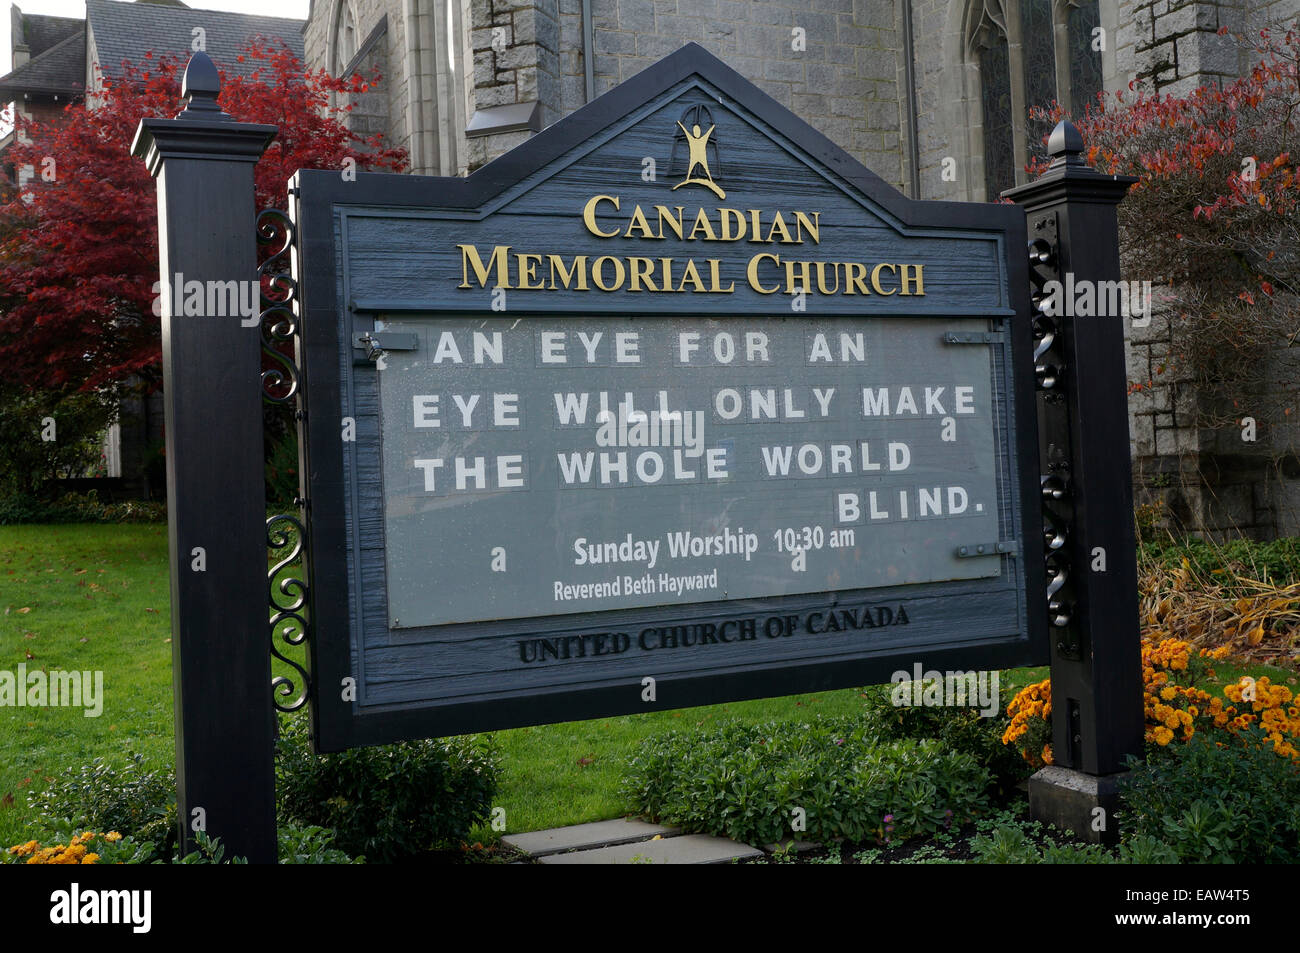 An eye for an eye saying on a sign outside Canadian Memorial United Church, Vancouver, BC, Canada - Stock Image